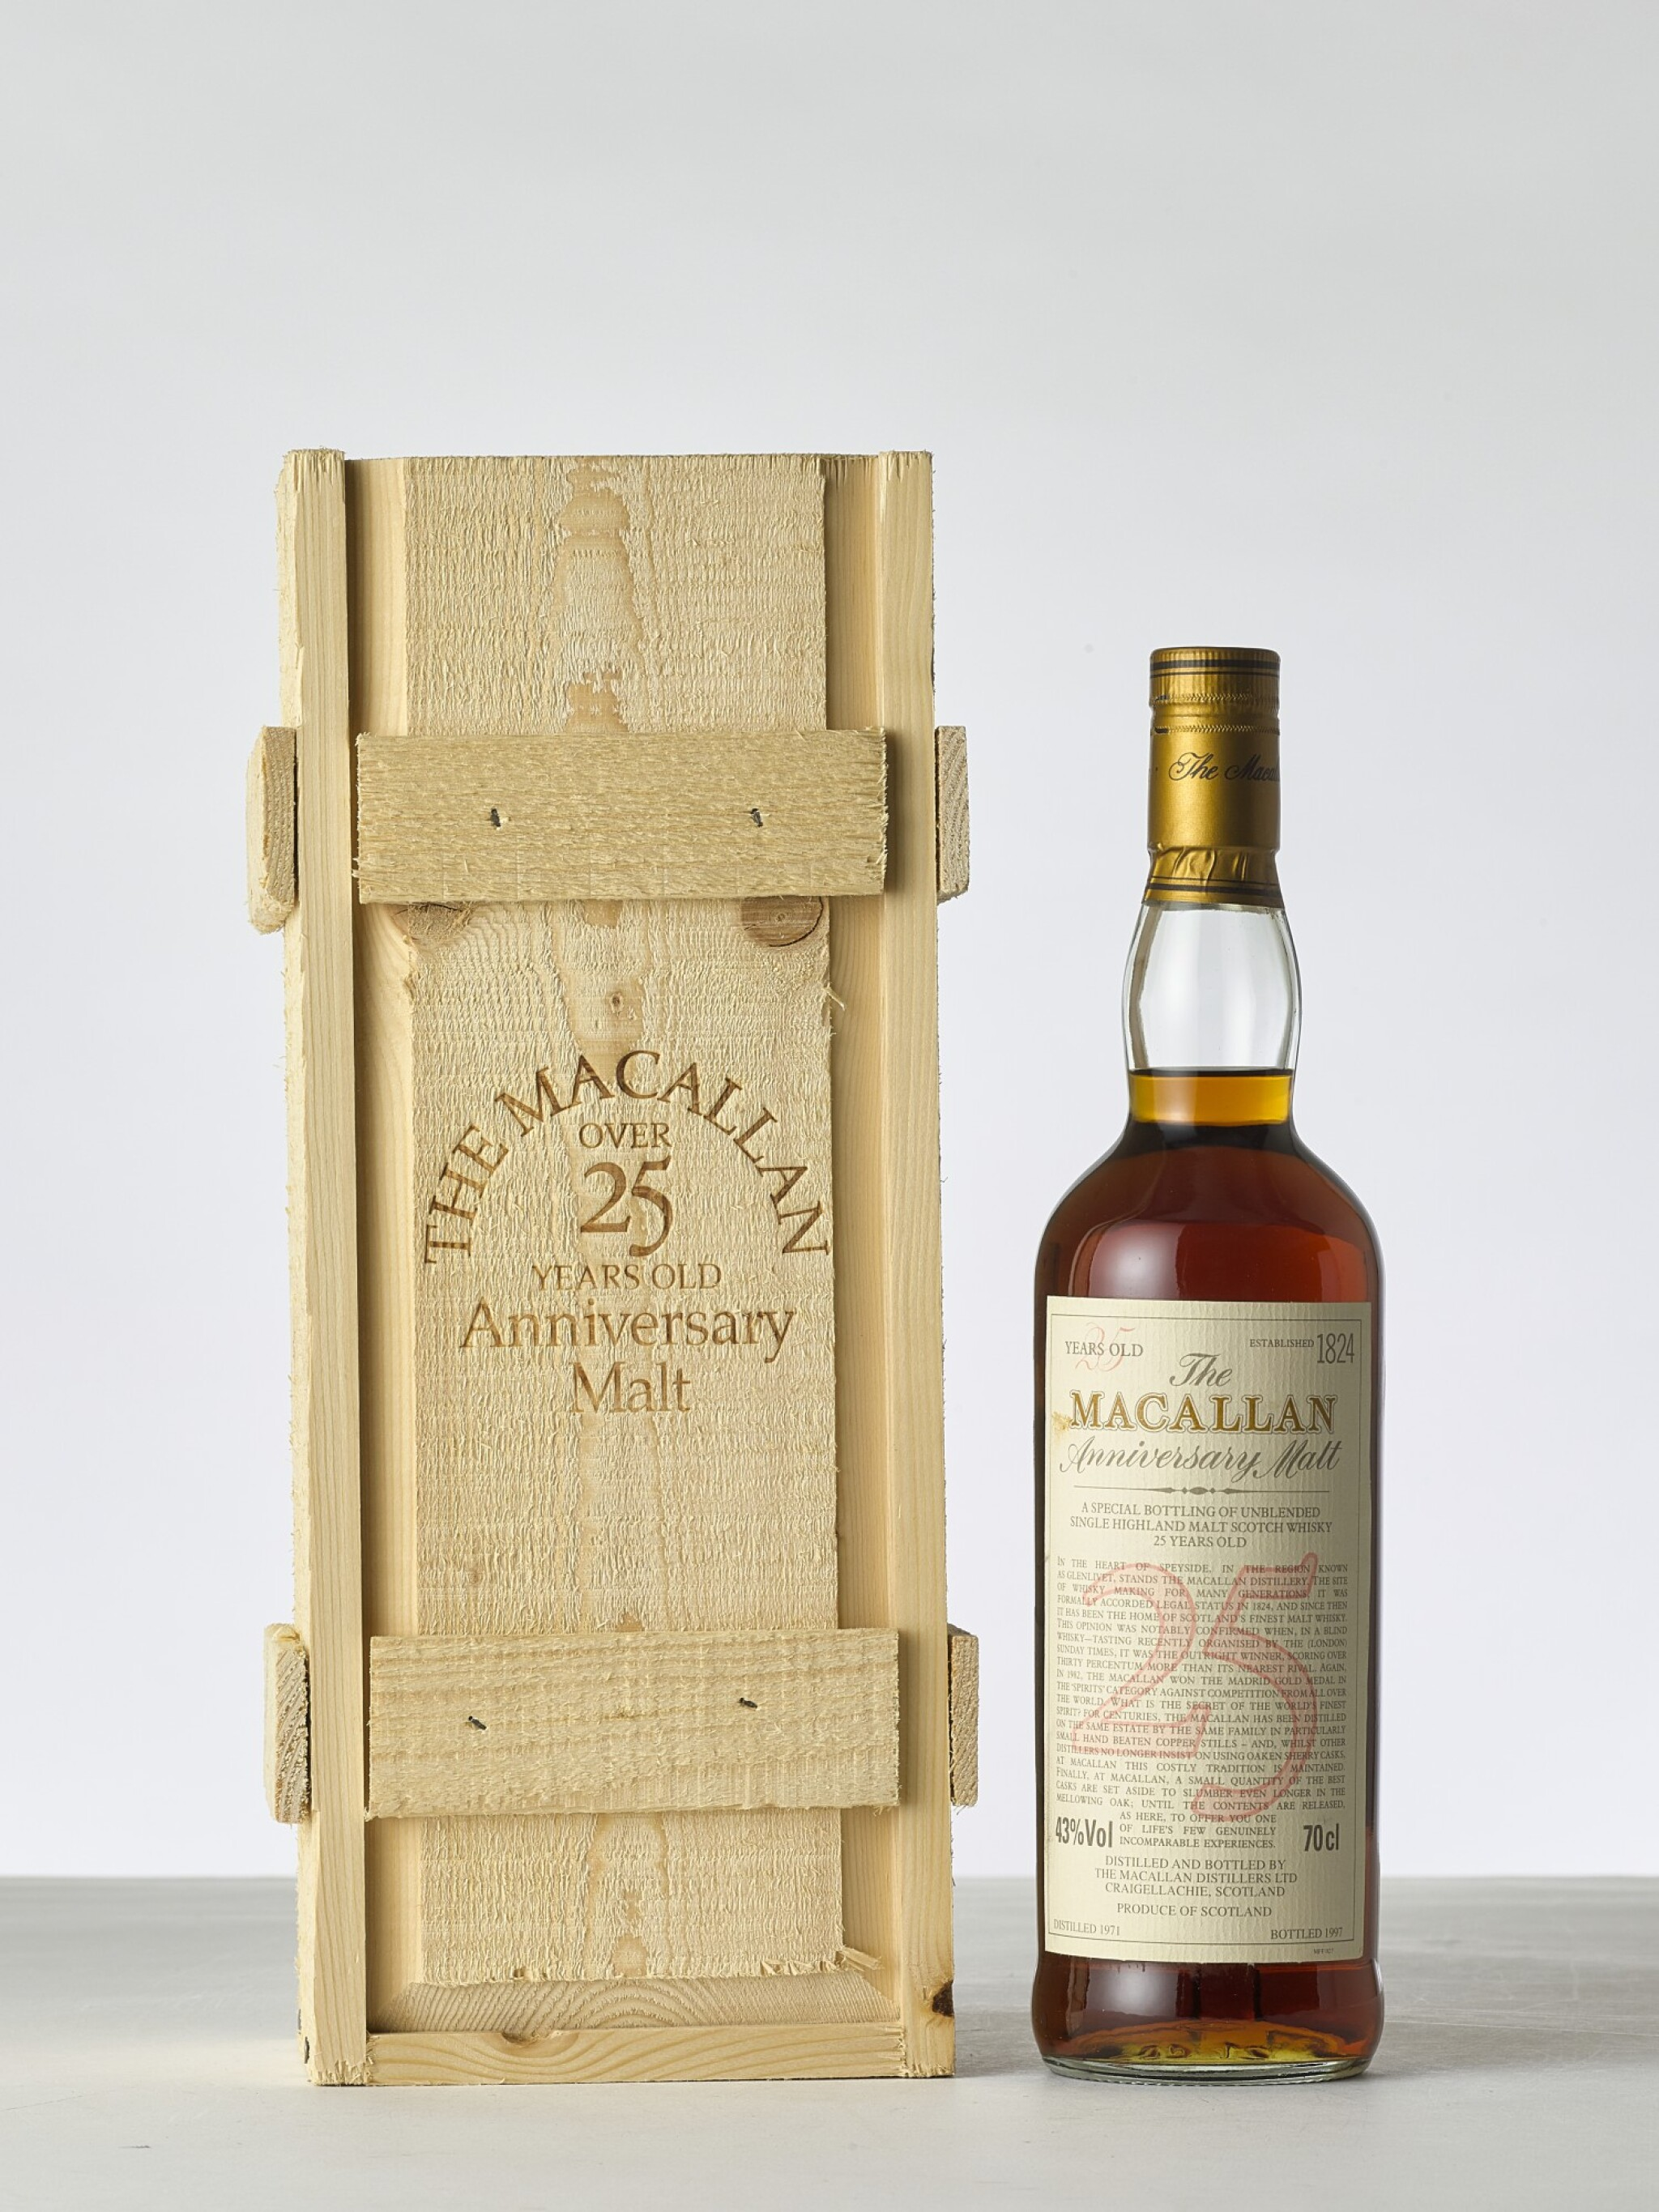 View 1 of Lot 2006.  The Macallan 25 Year Old Anniversary Malt 43.0 abv 1971 (1 BT70).